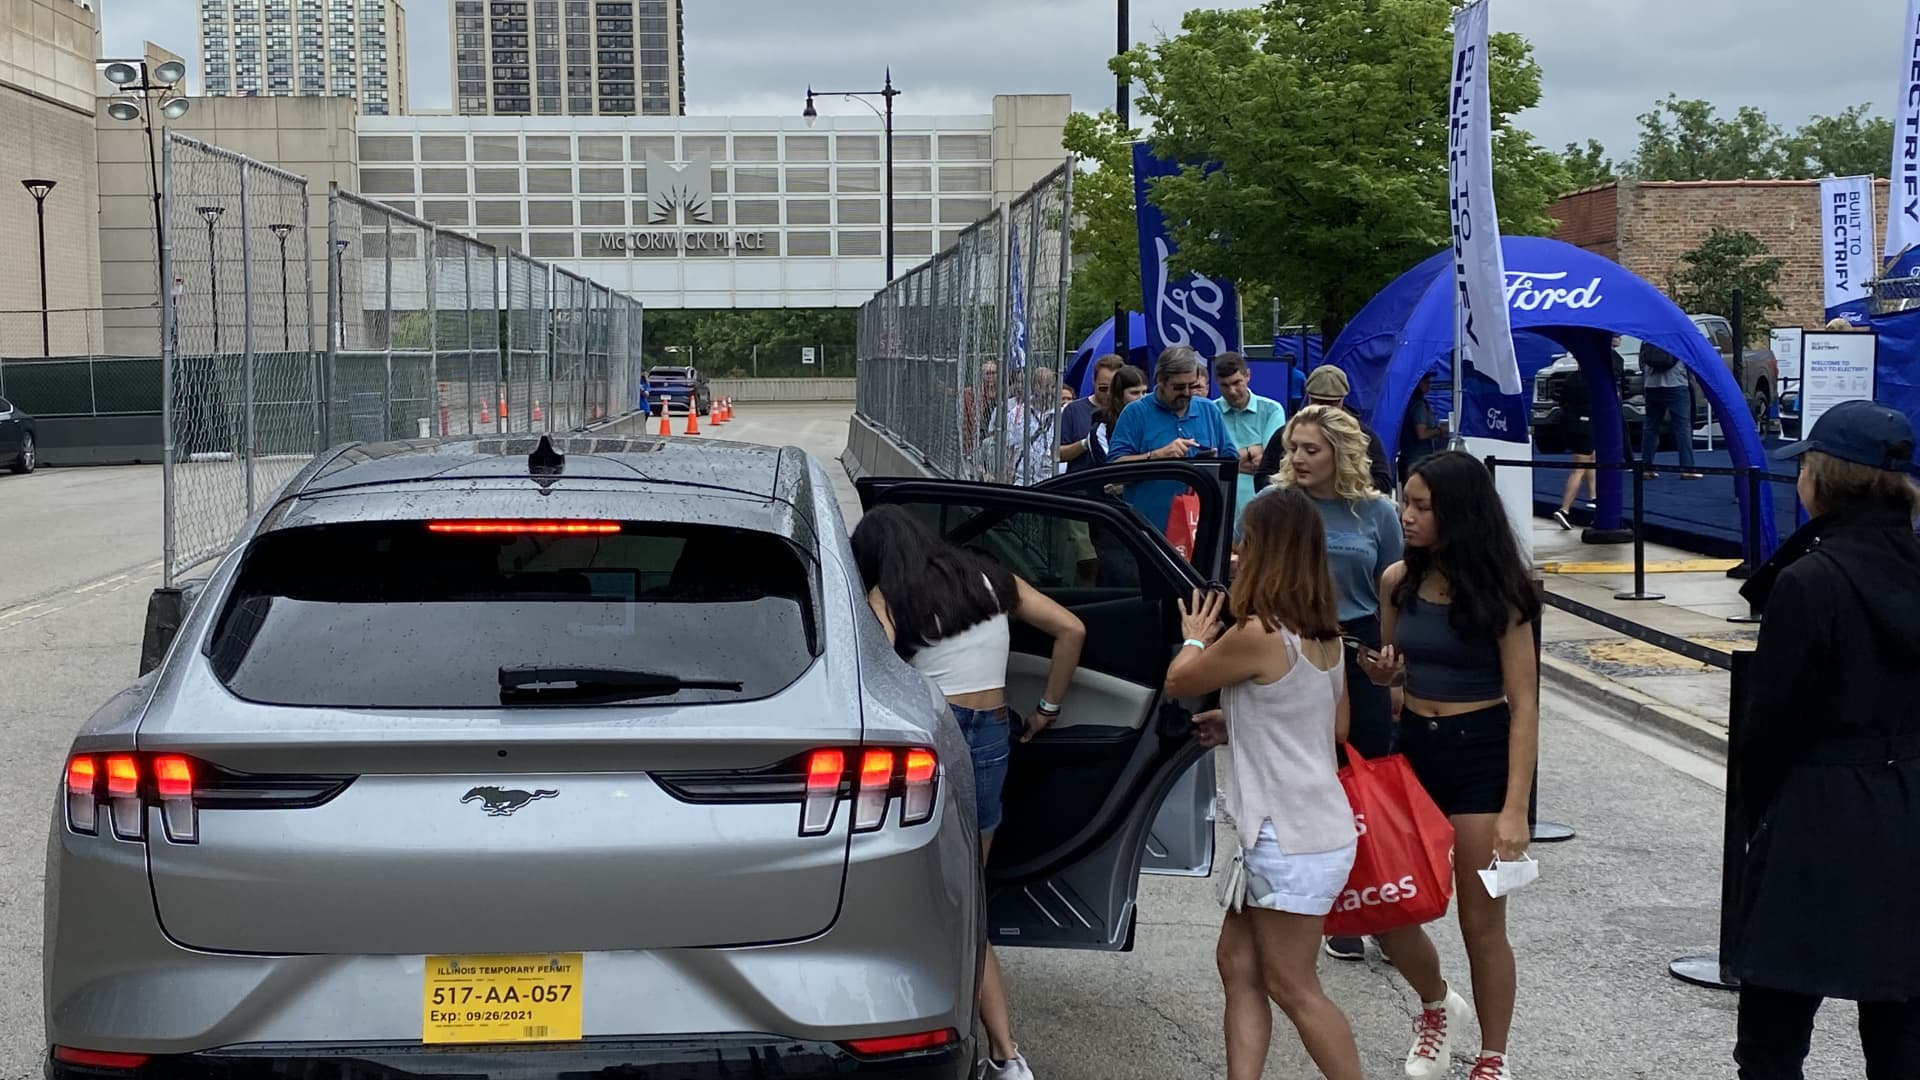 Attendees of the Chicago Auto Show on July 15, 2021 get into a Ford Mustang Mach-E for a test ride in the electric crossover outside of the McCormick Place Convention Center.